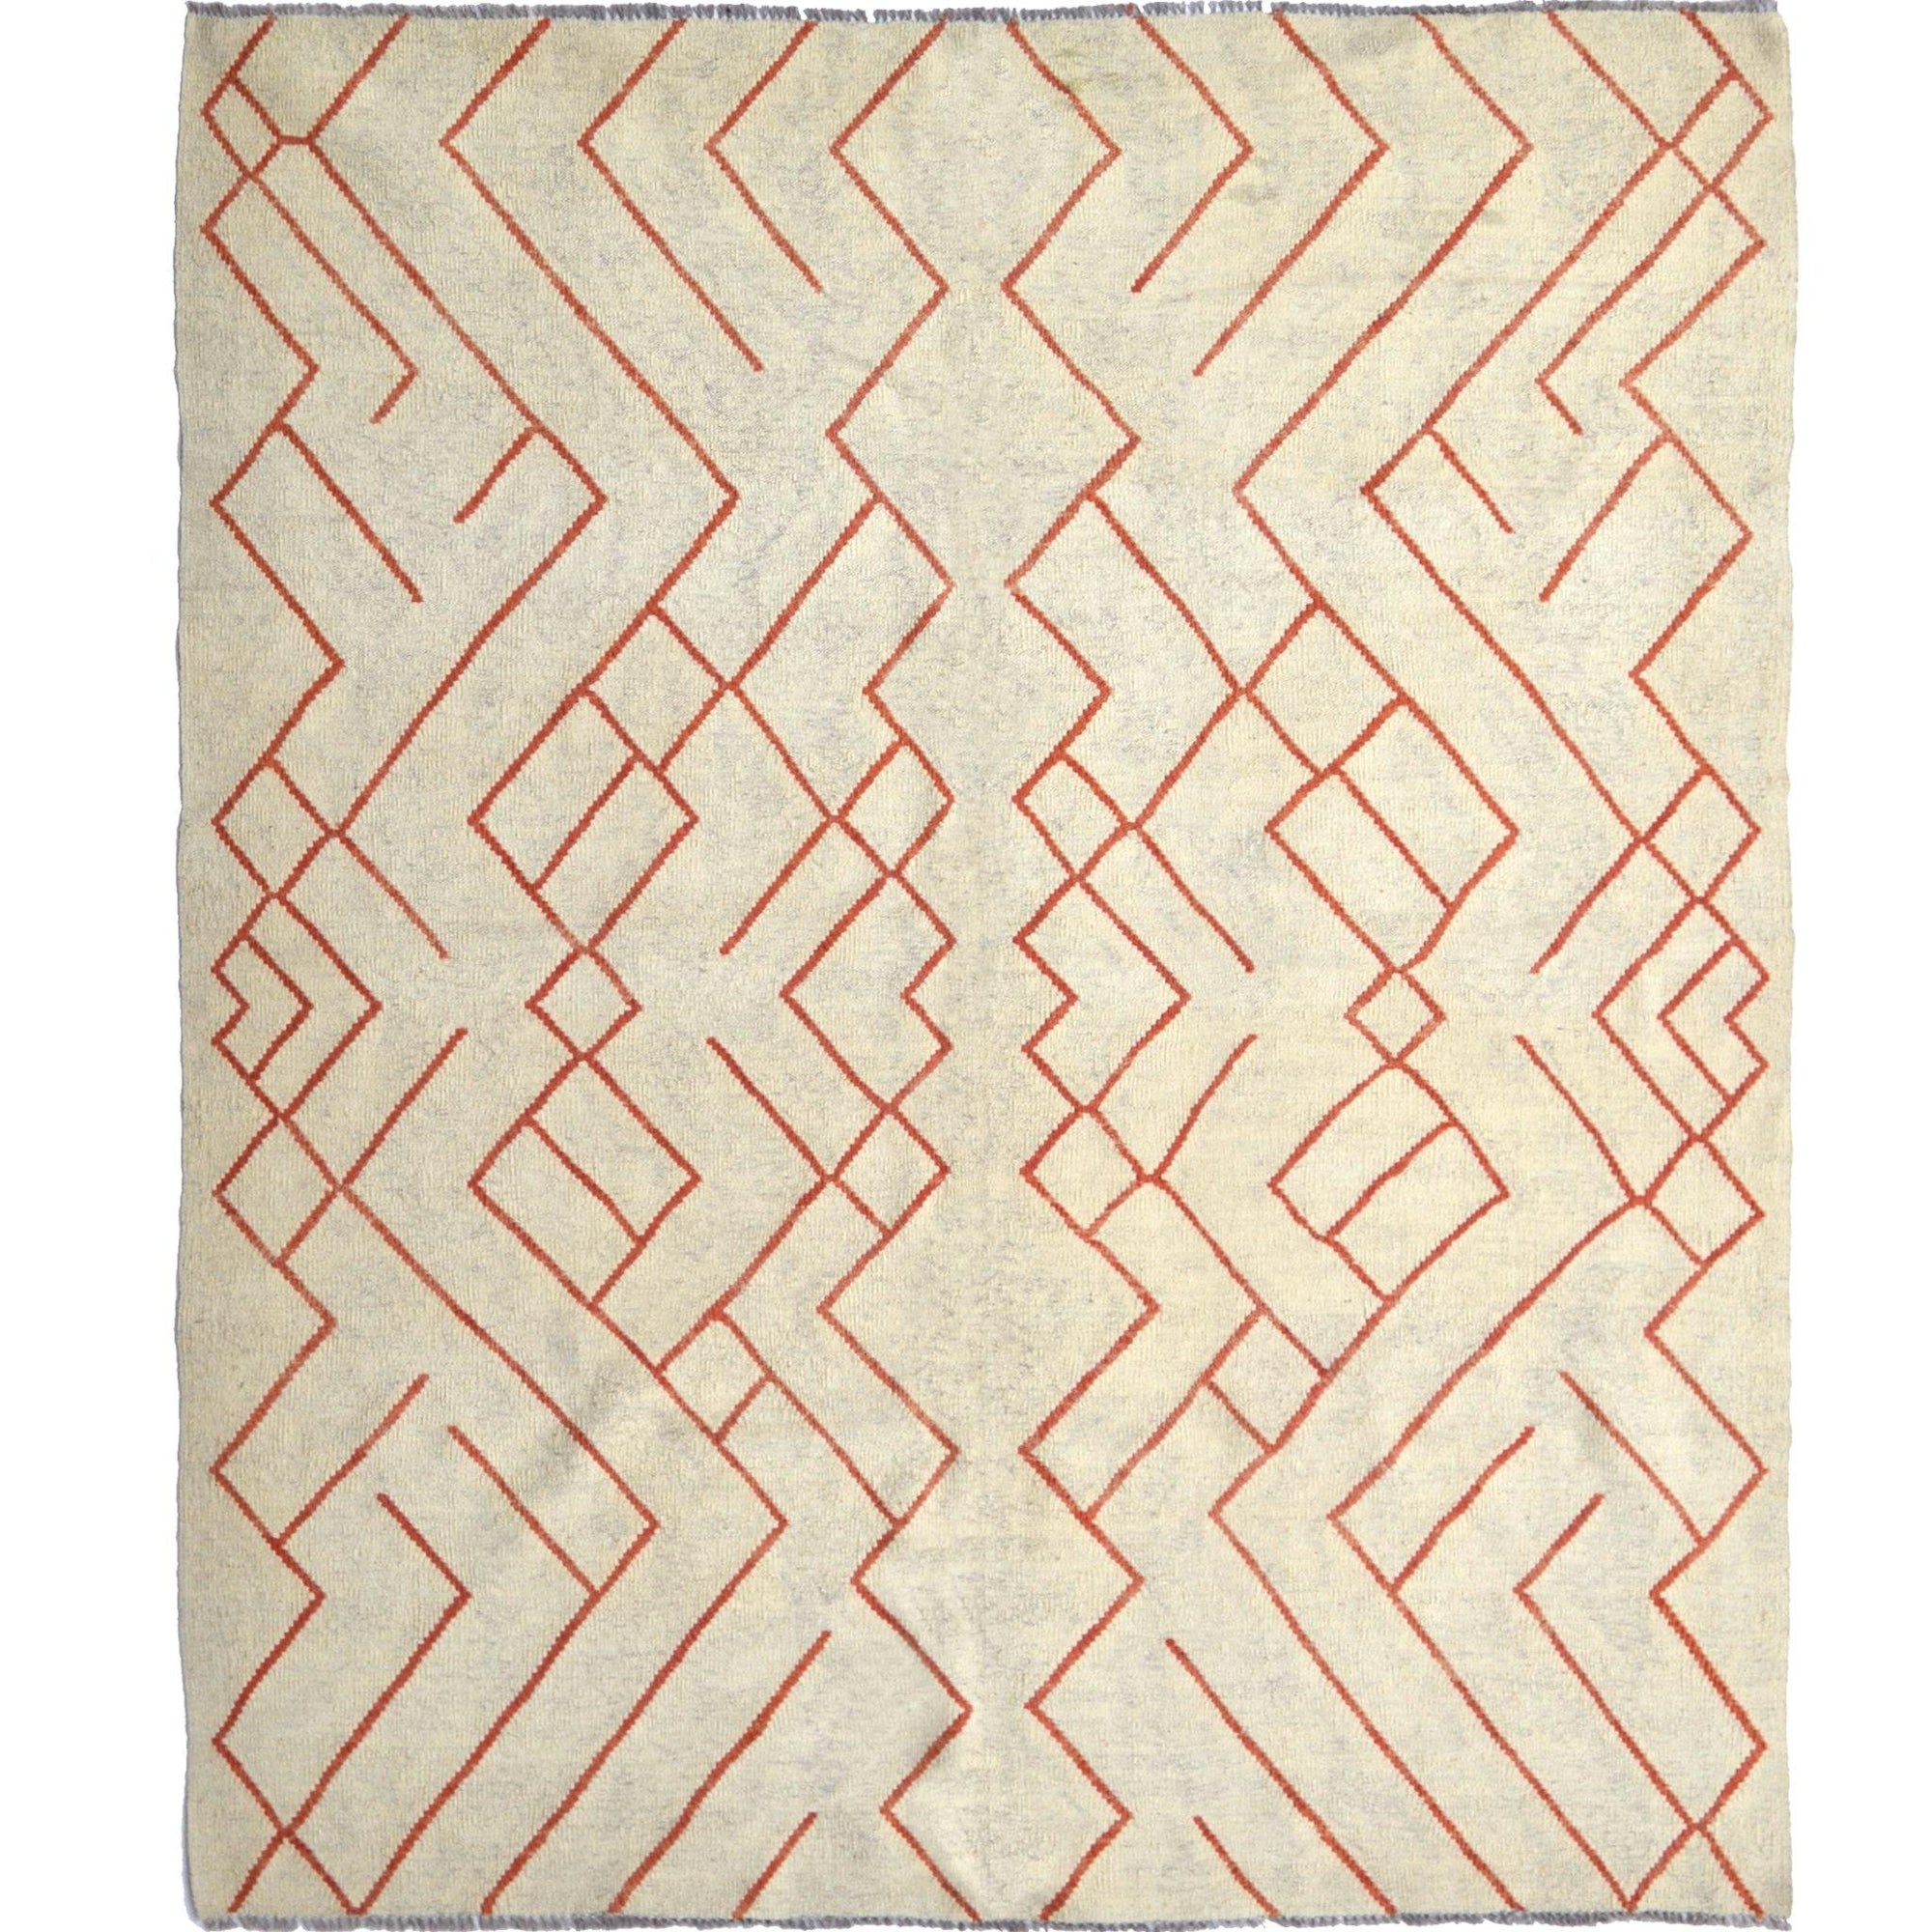 Fine Modern Hand-woven 100% Wool Afghan Chobi Kilim Rug 182cm x 221cm Persian-Rug | House-of-Haghi | NewMarket | Auckland | NZ | Handmade Persian Rugs | Hand Knotted Persian Rugs